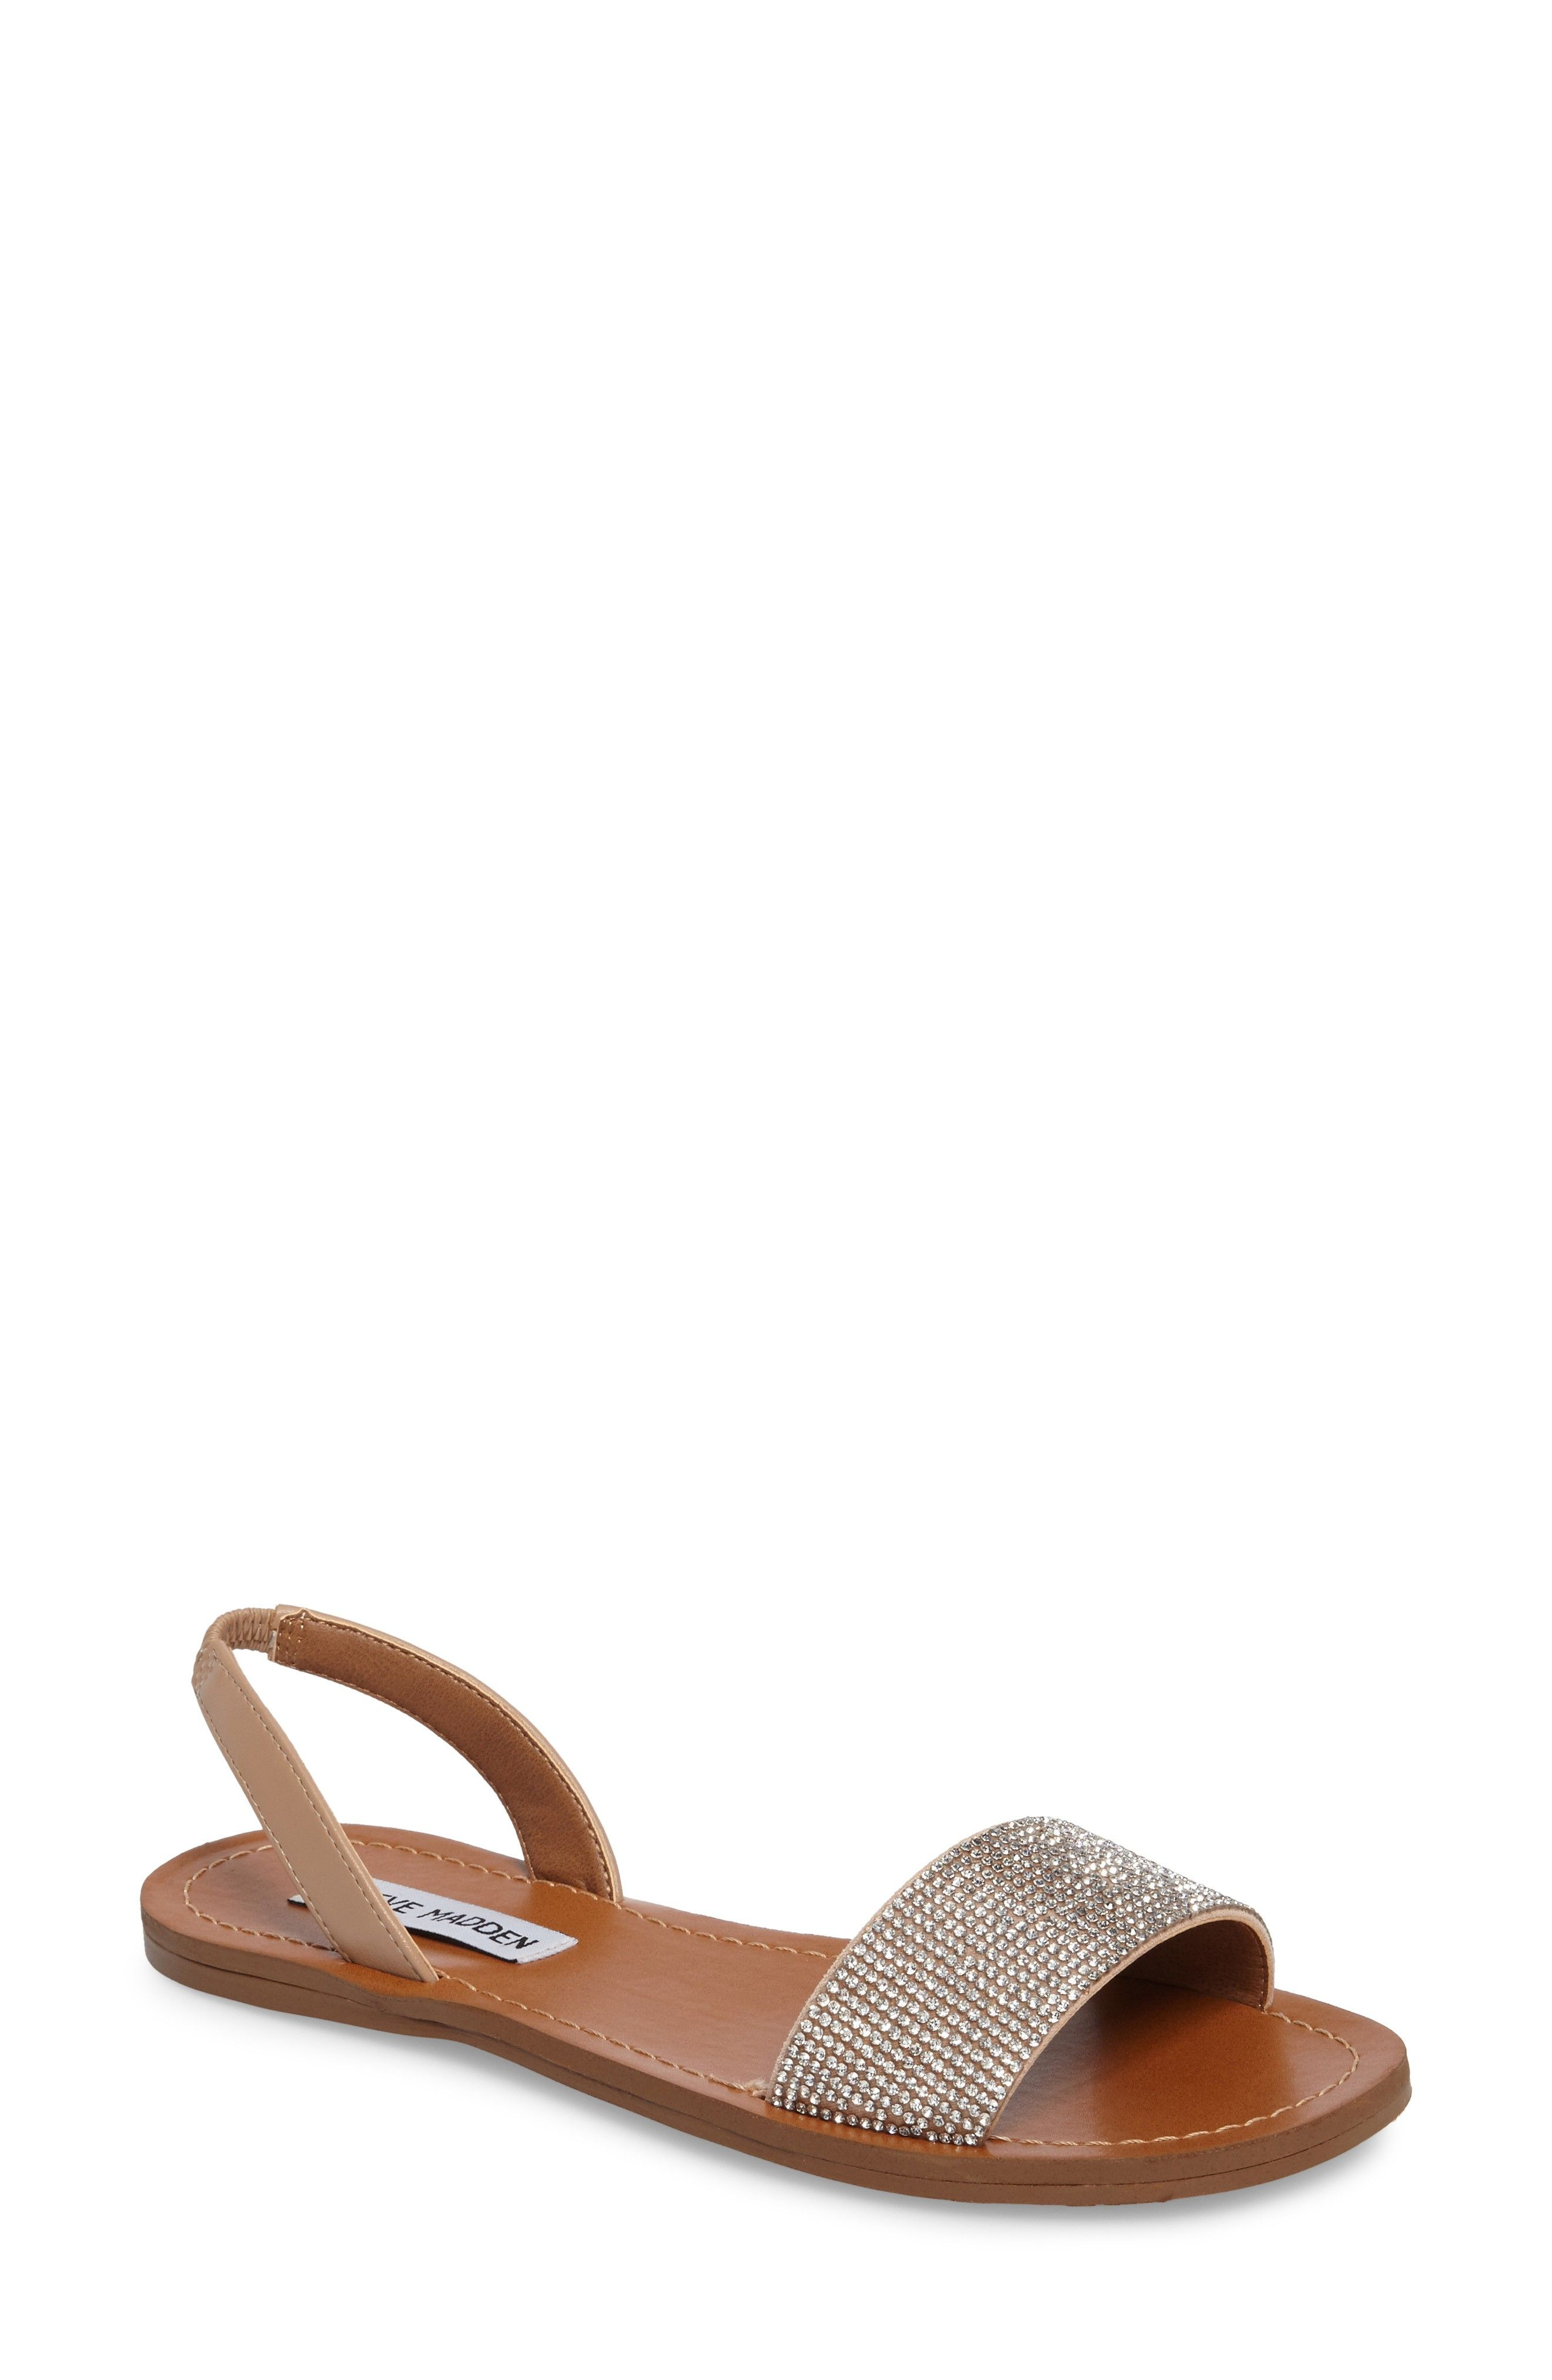 STEVE MADDEN | Rock Sandal #Shoes #Sandals #Slides #STEVE MADDEN